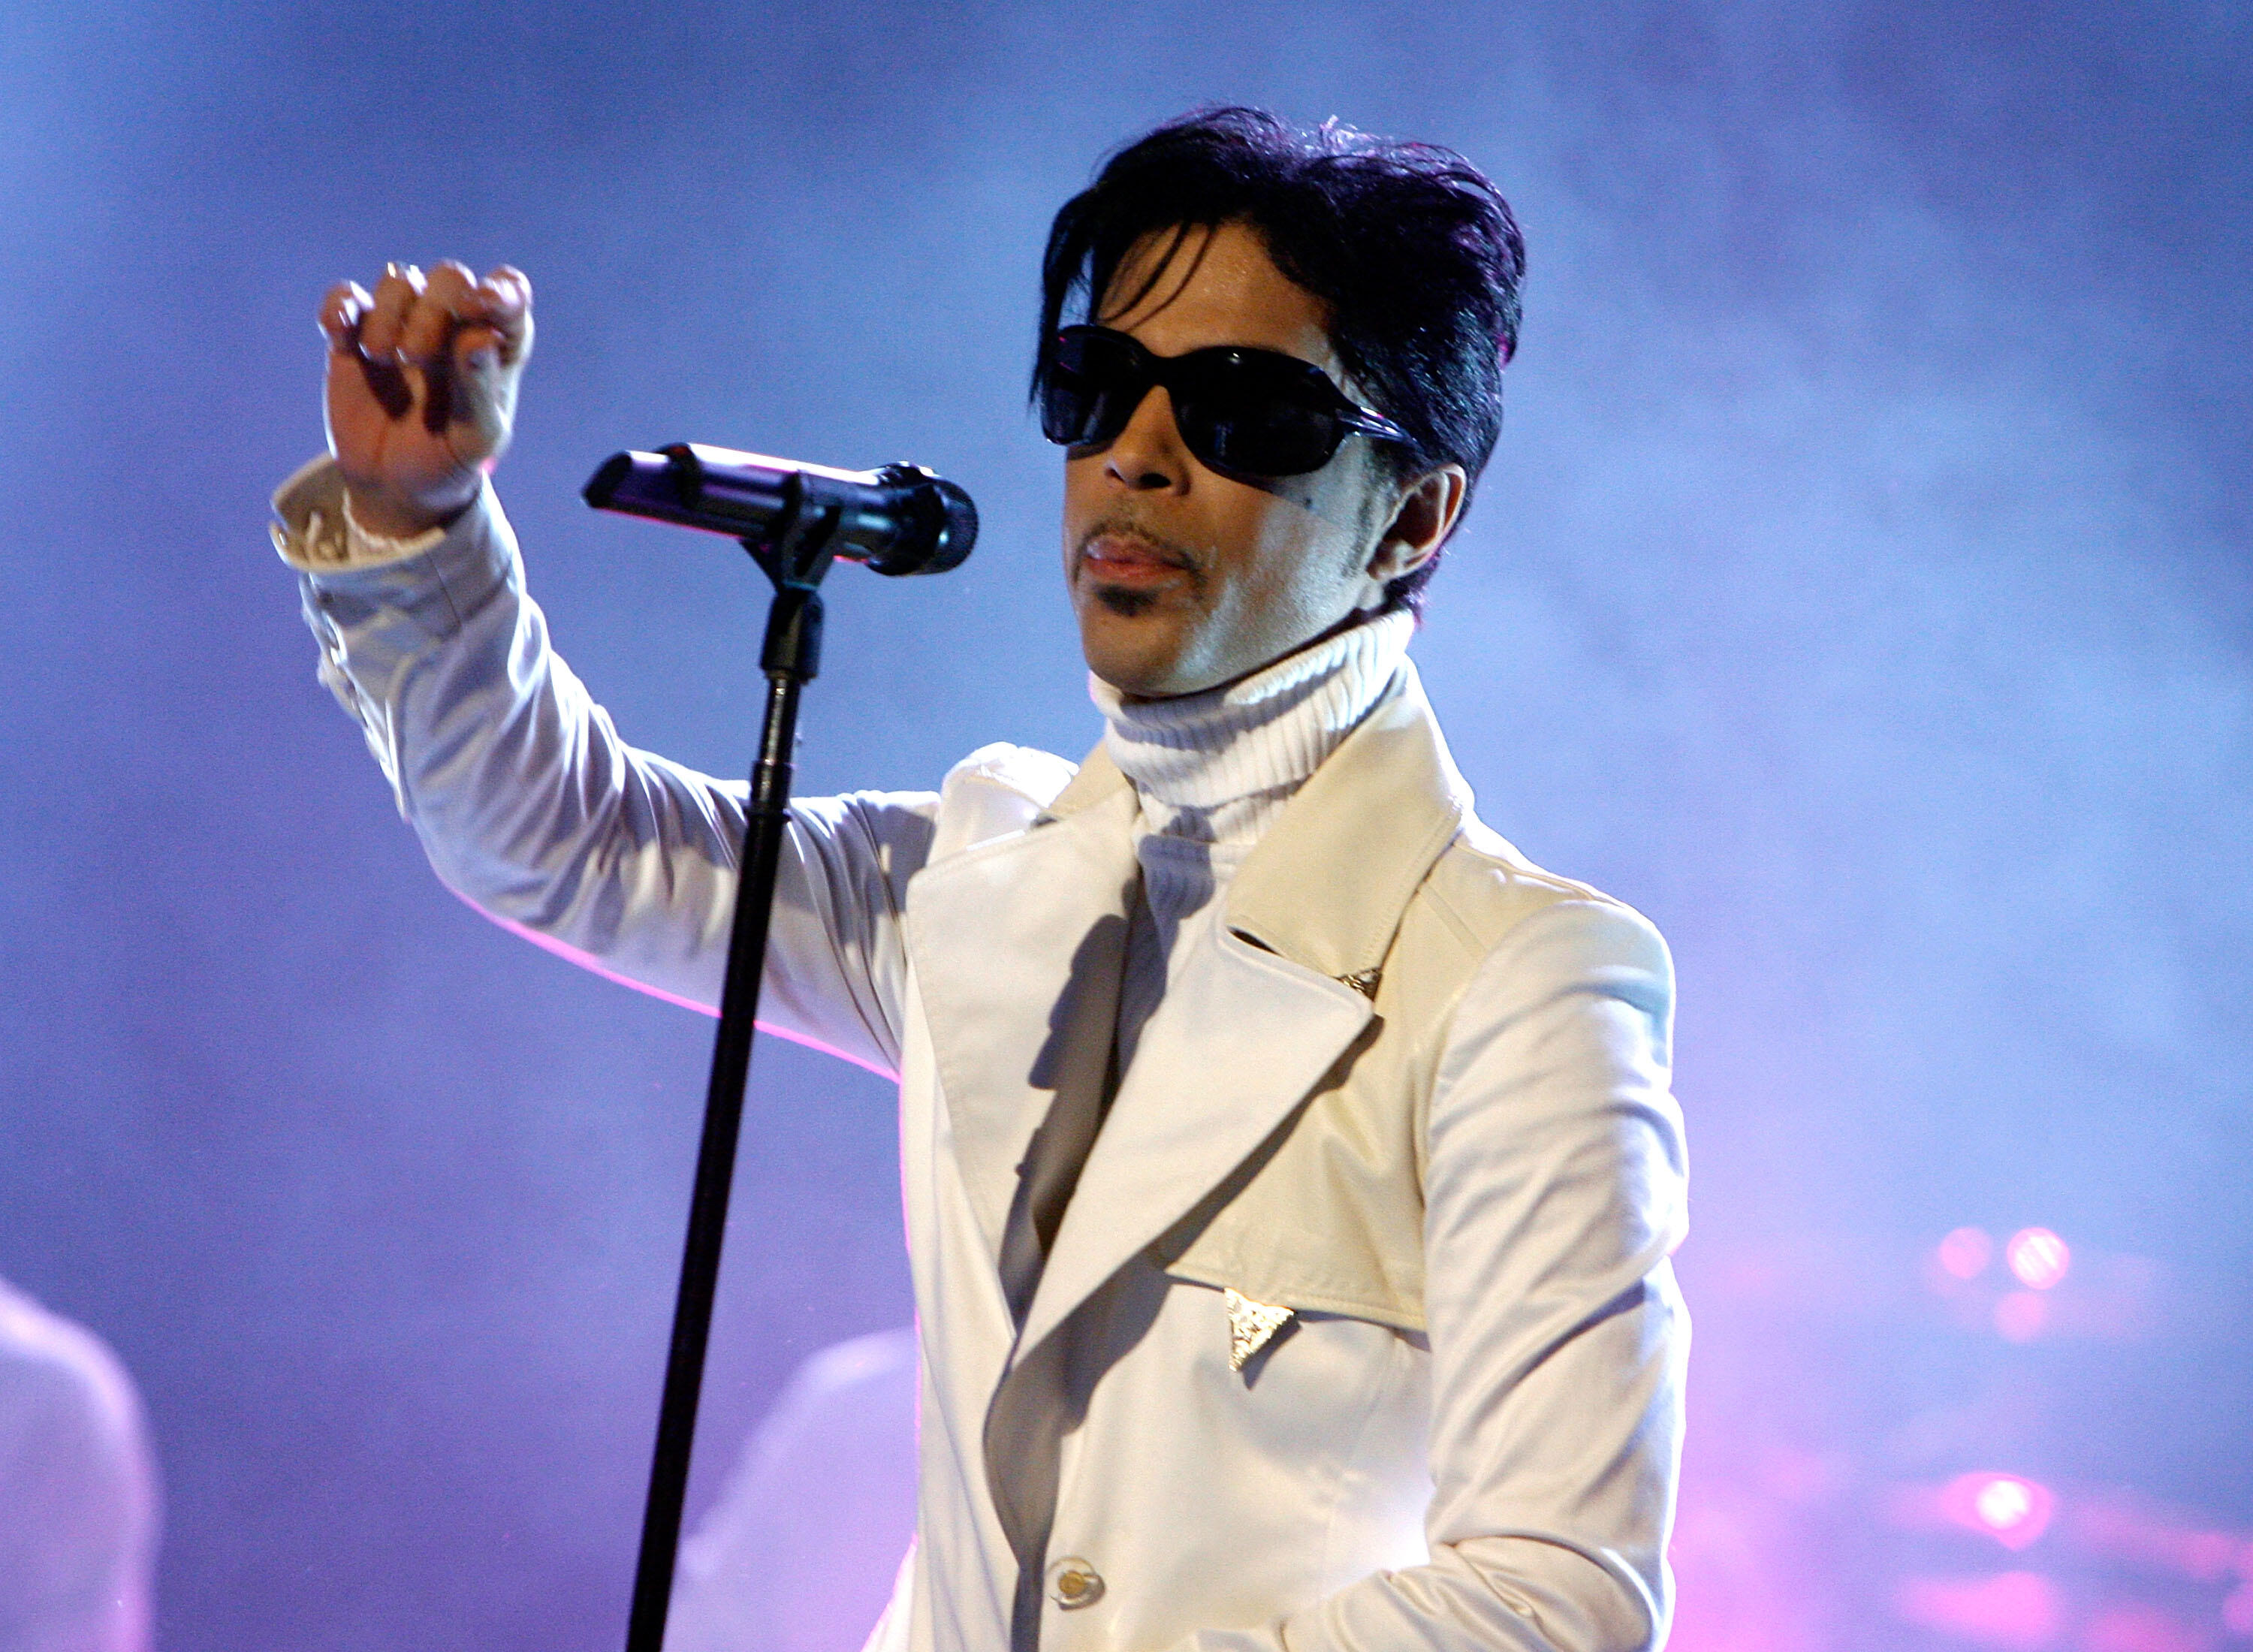 PASADENA, CA - JUNE 01:  Singer Prince performs onstage during the 2007 NCLR ALMA Awards held at the Pasadena Civic Auditorium on June 1, 2007 in Pasadena, California.  (Photo by Kevin Winter/Getty Images for NCLR)